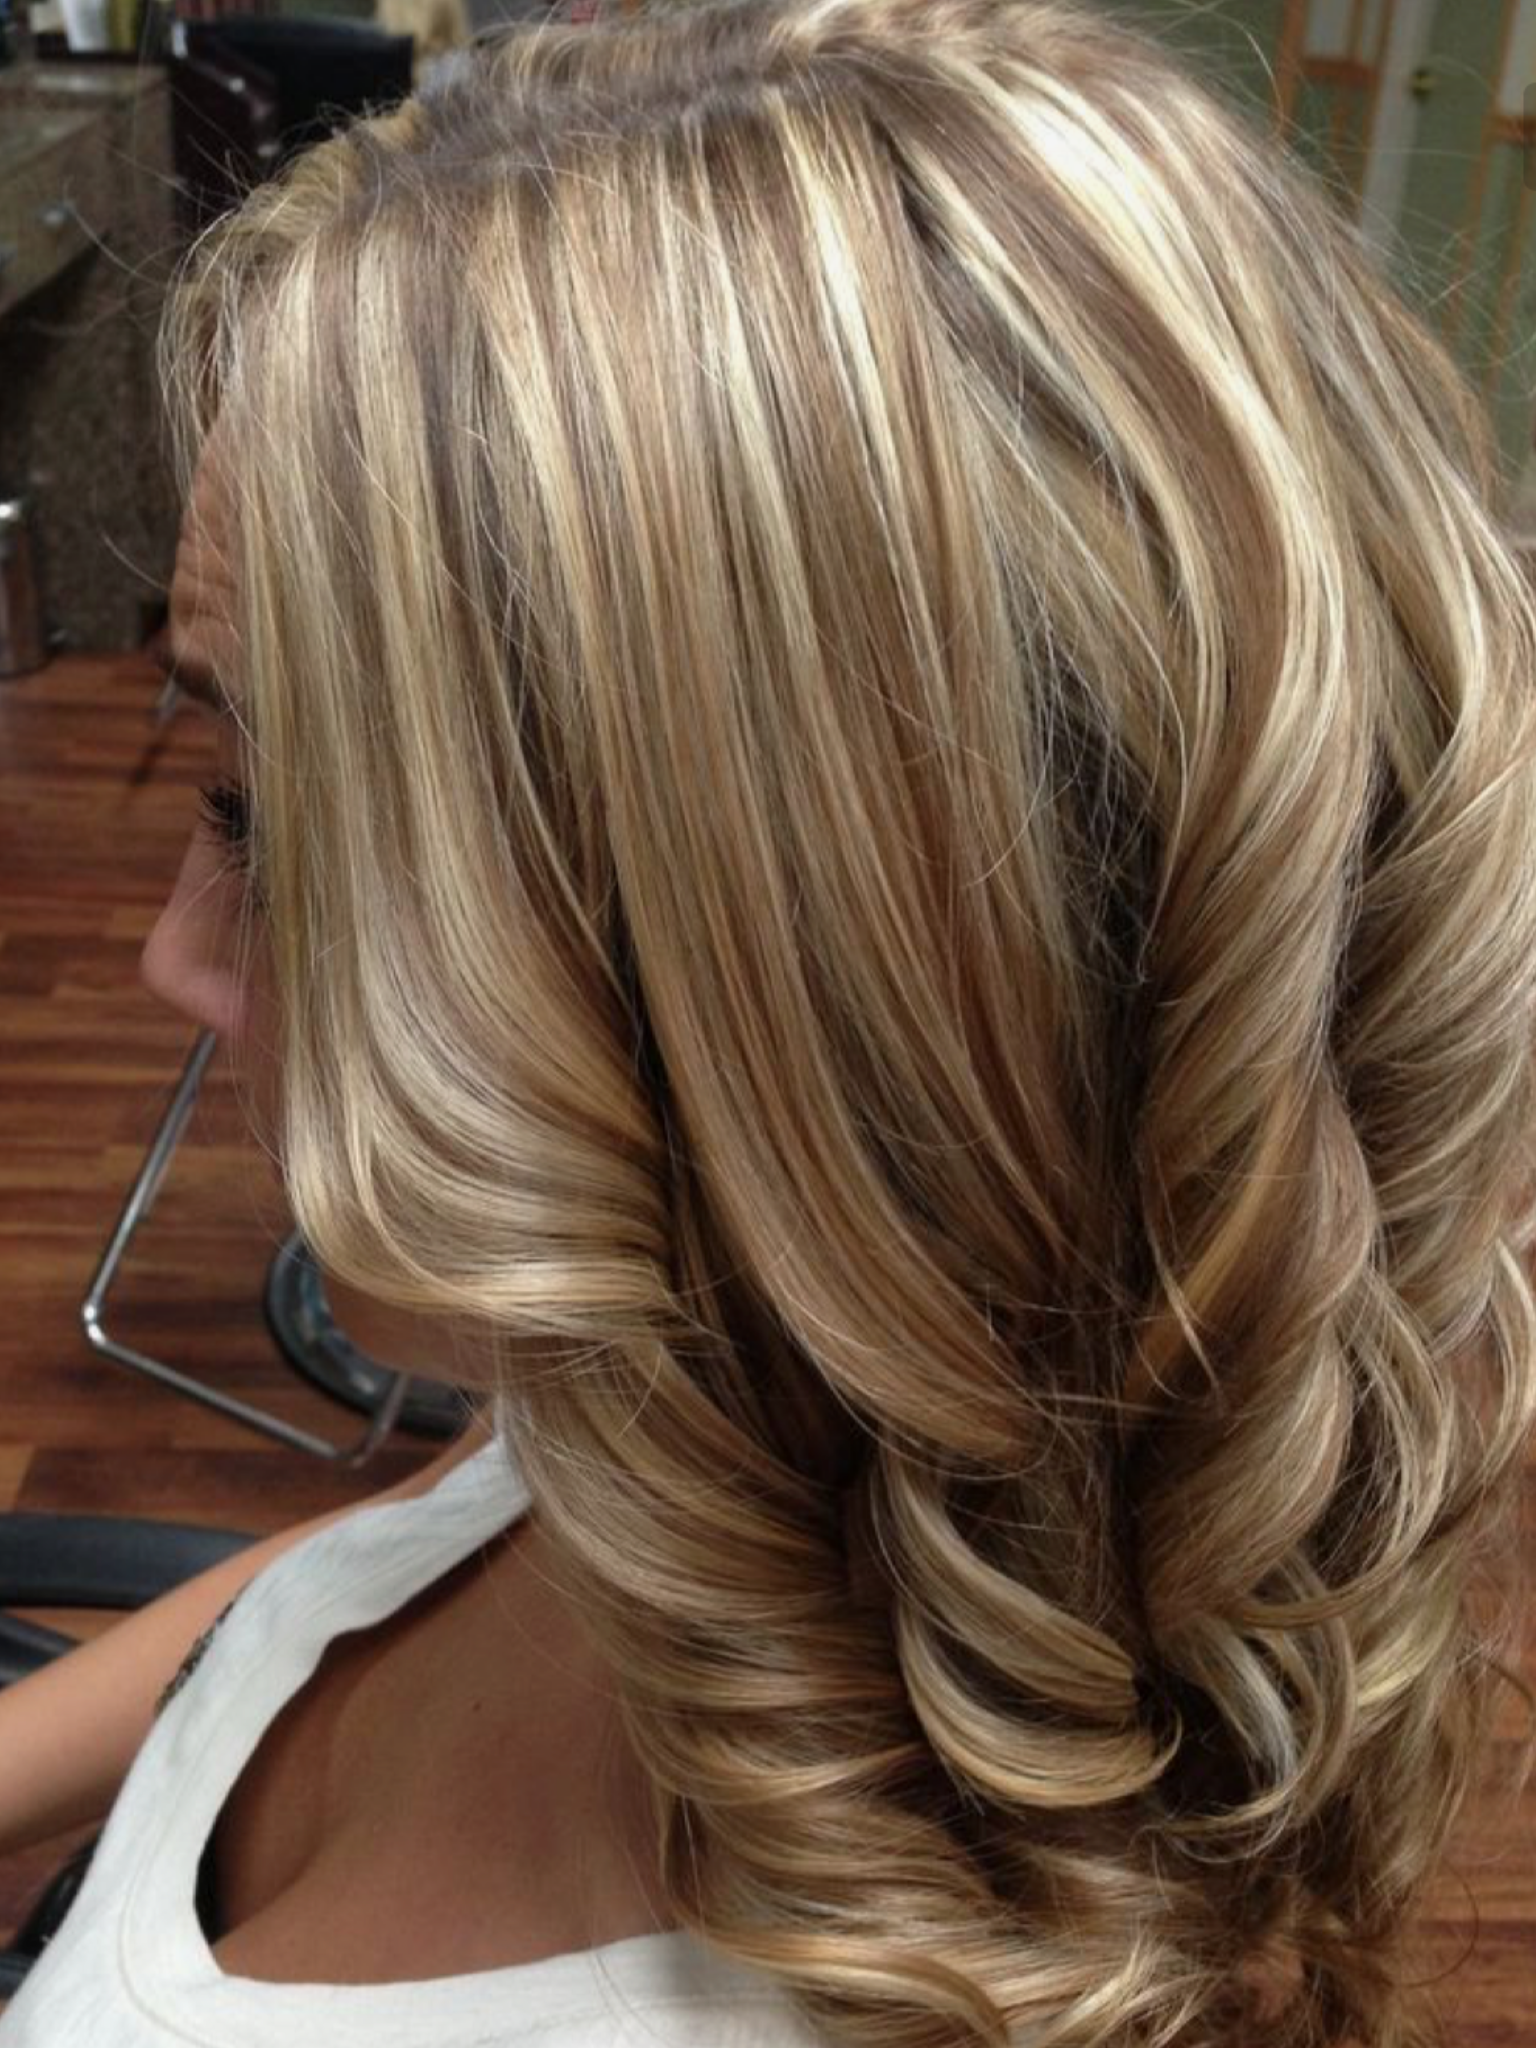 Coiffure Tresse Blonde Pin By Mary Hippen On Mary 39s Hair Colors